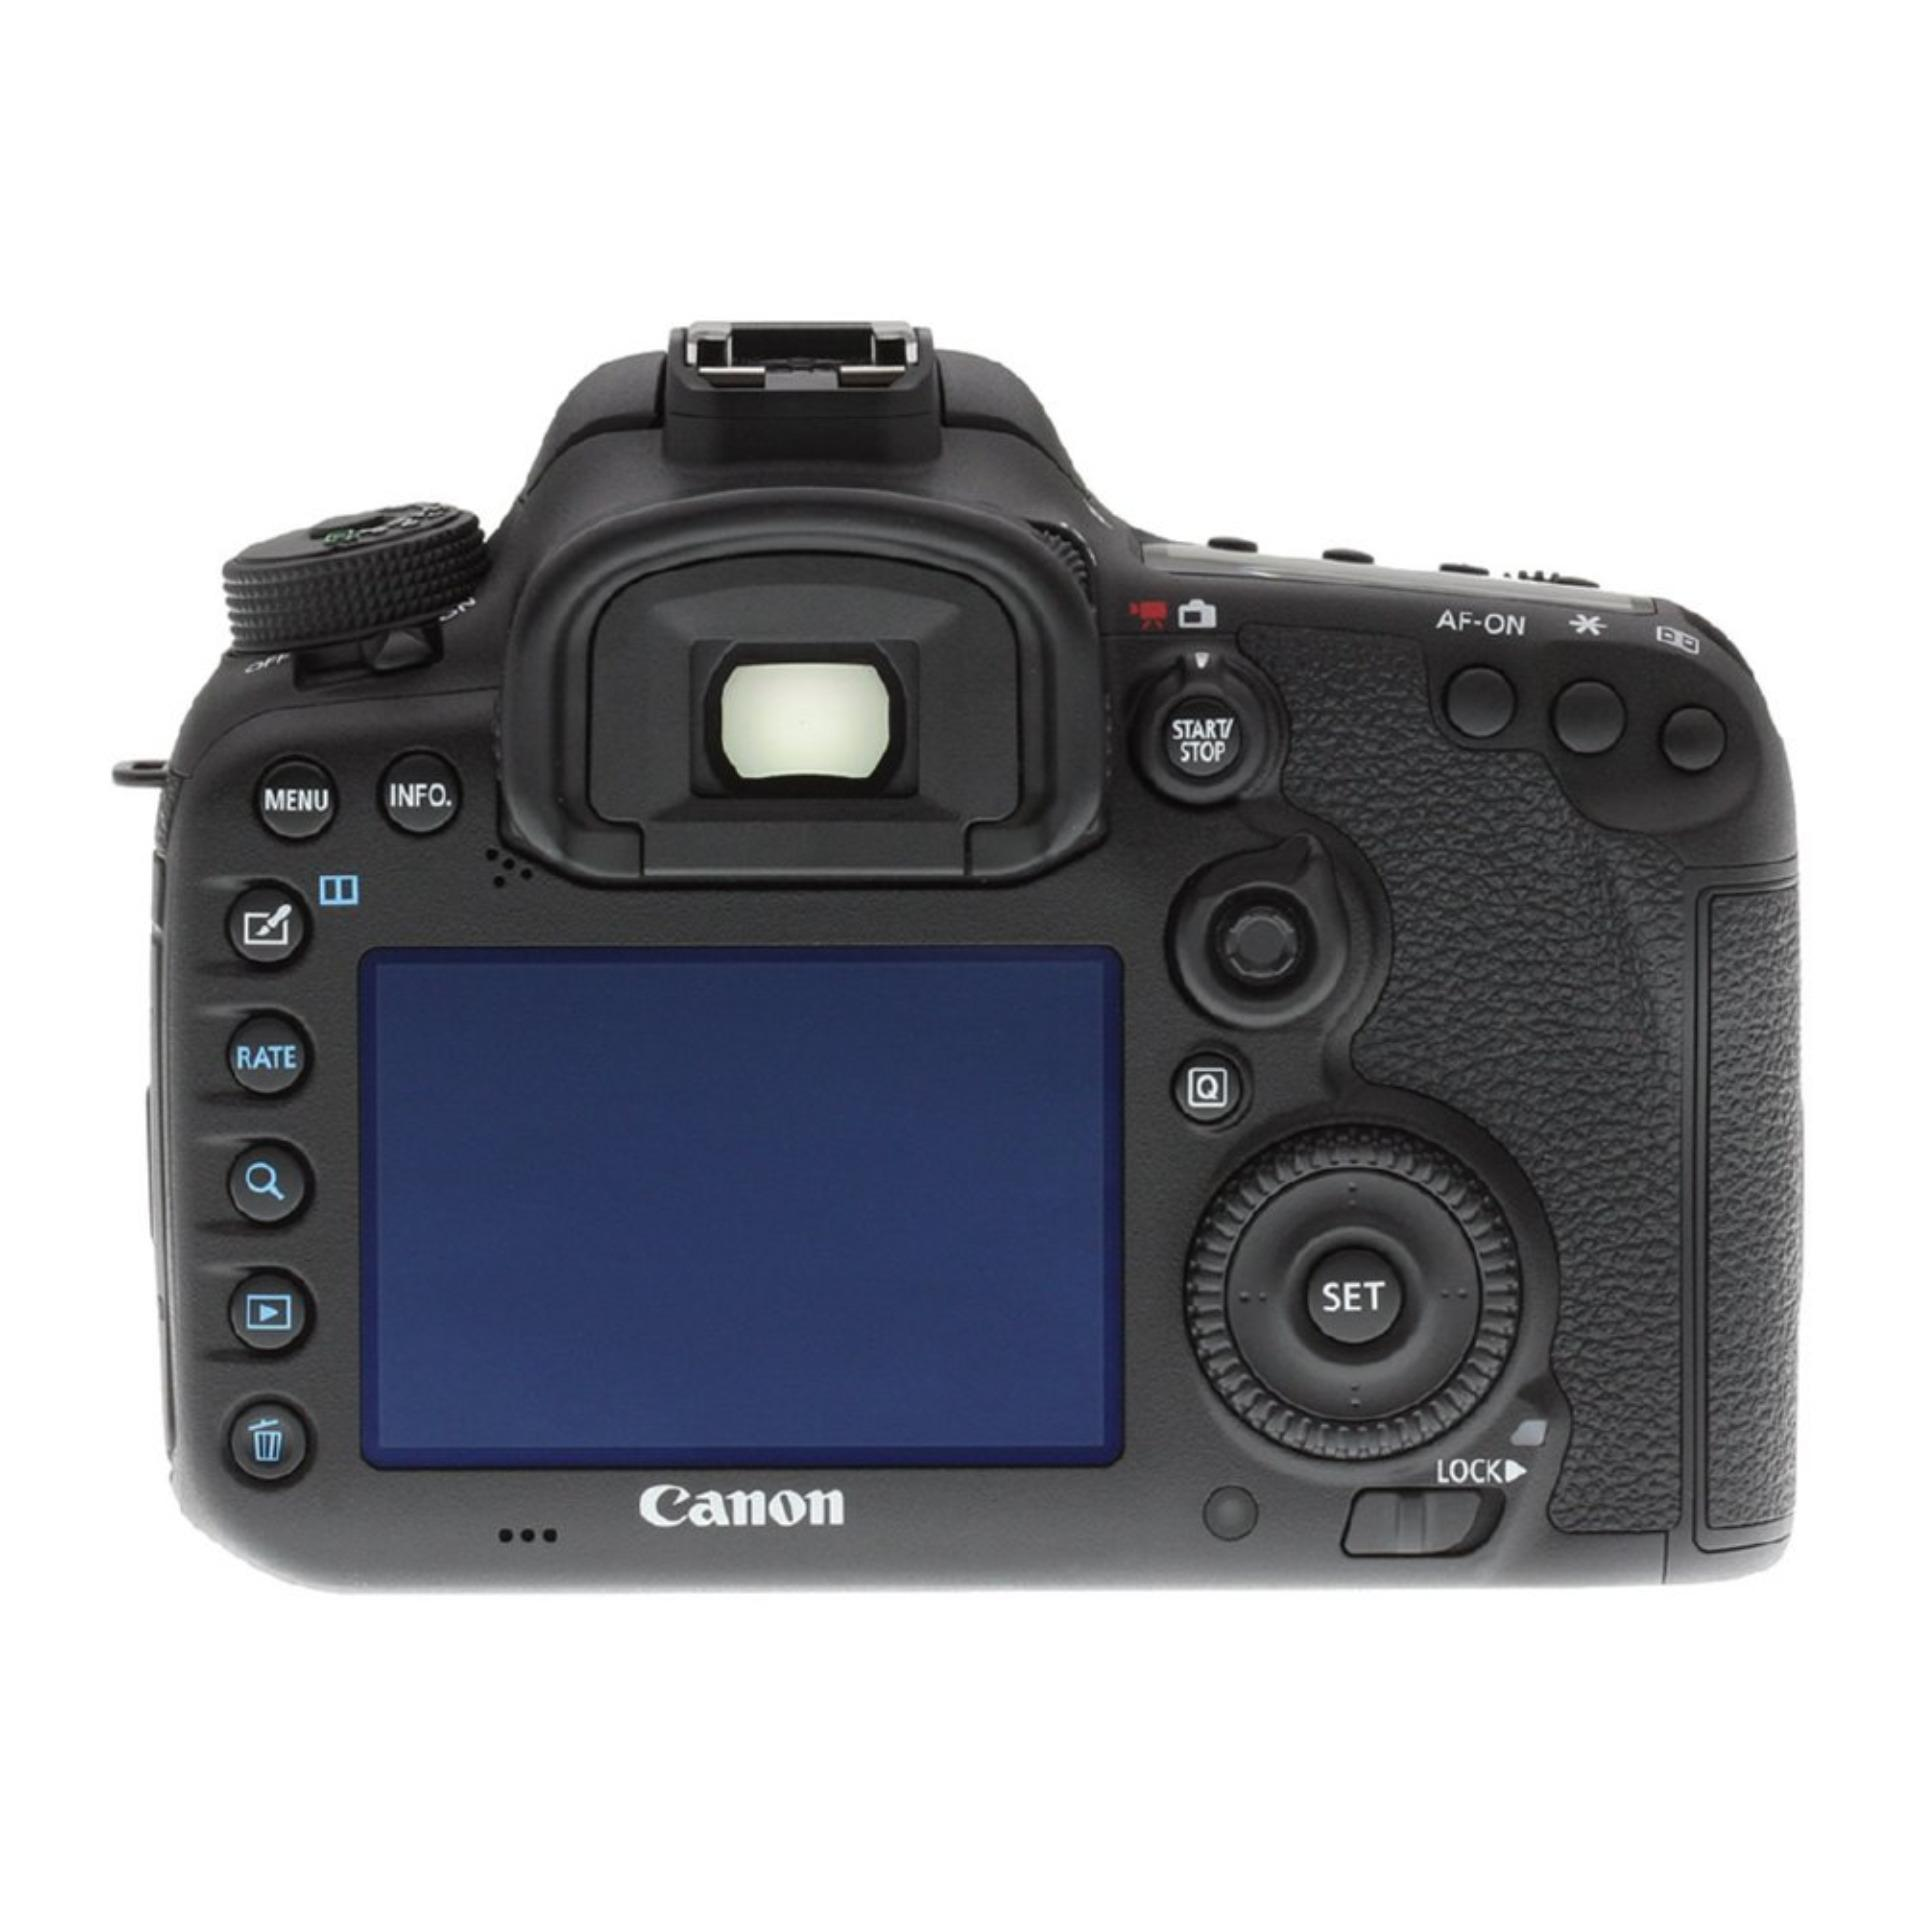 Canon EOS 7D Mark II DSLR Camera (Body Only) + Canon W-E1 Adapter